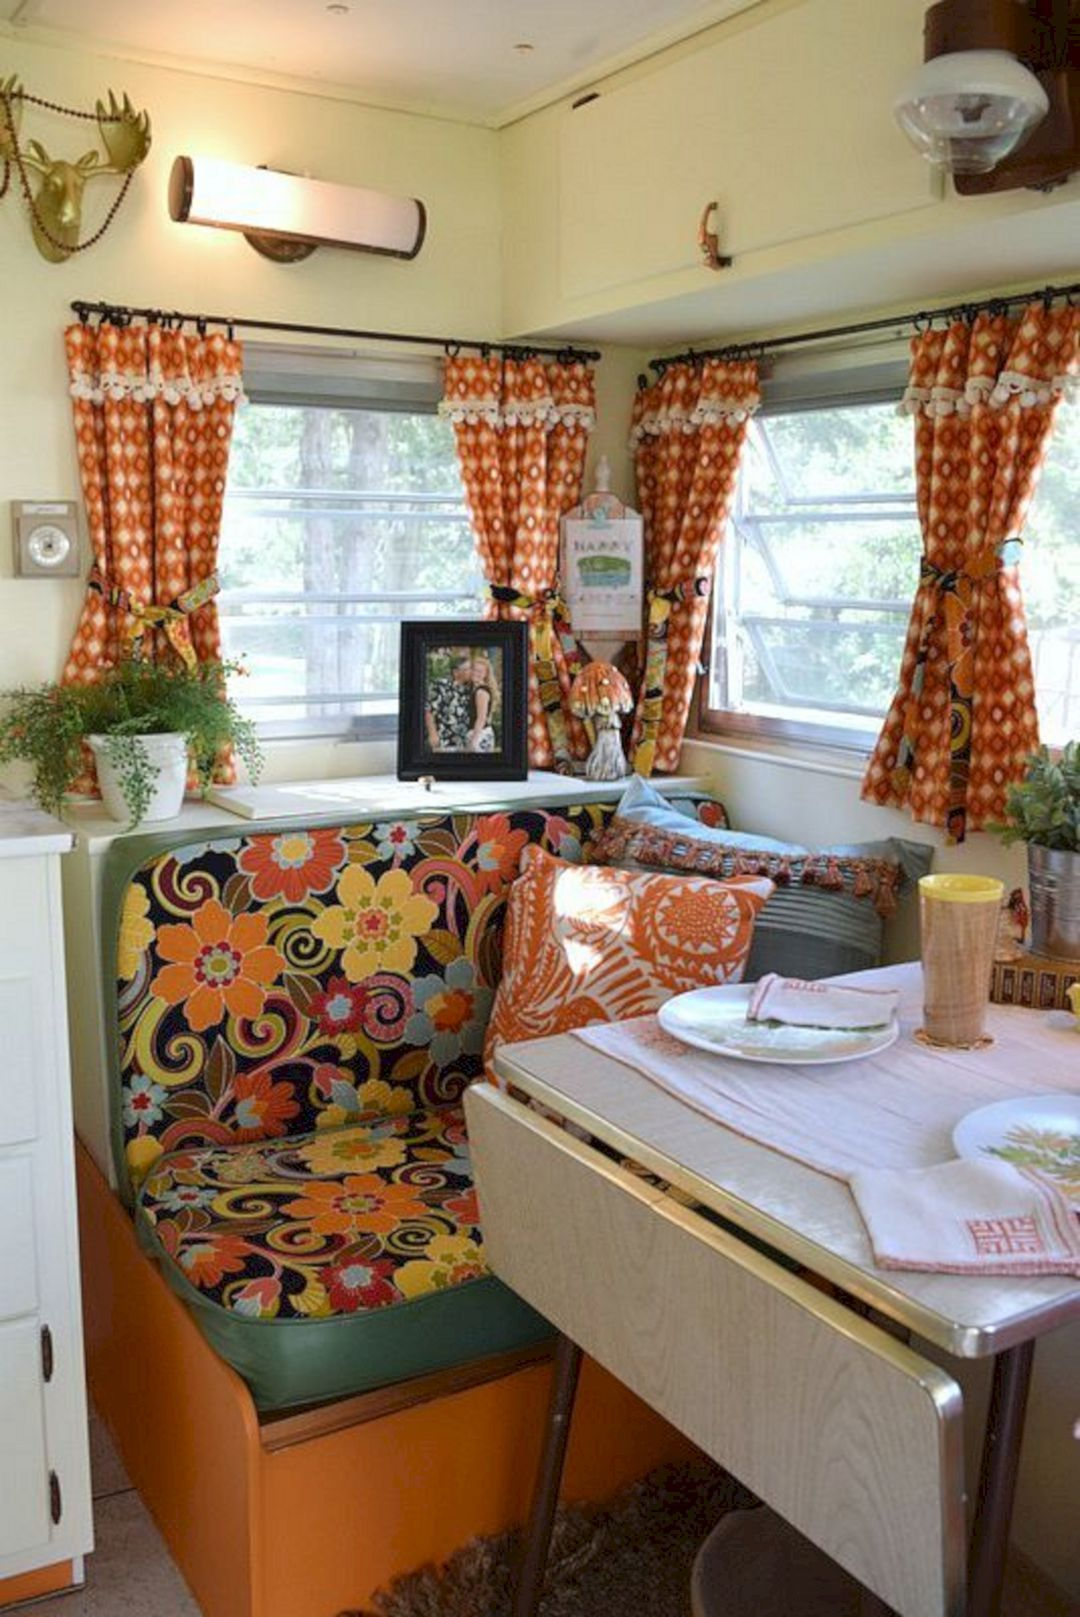 40 Awesome Rv Curtain Design For Amazing Camper Interior Ideas